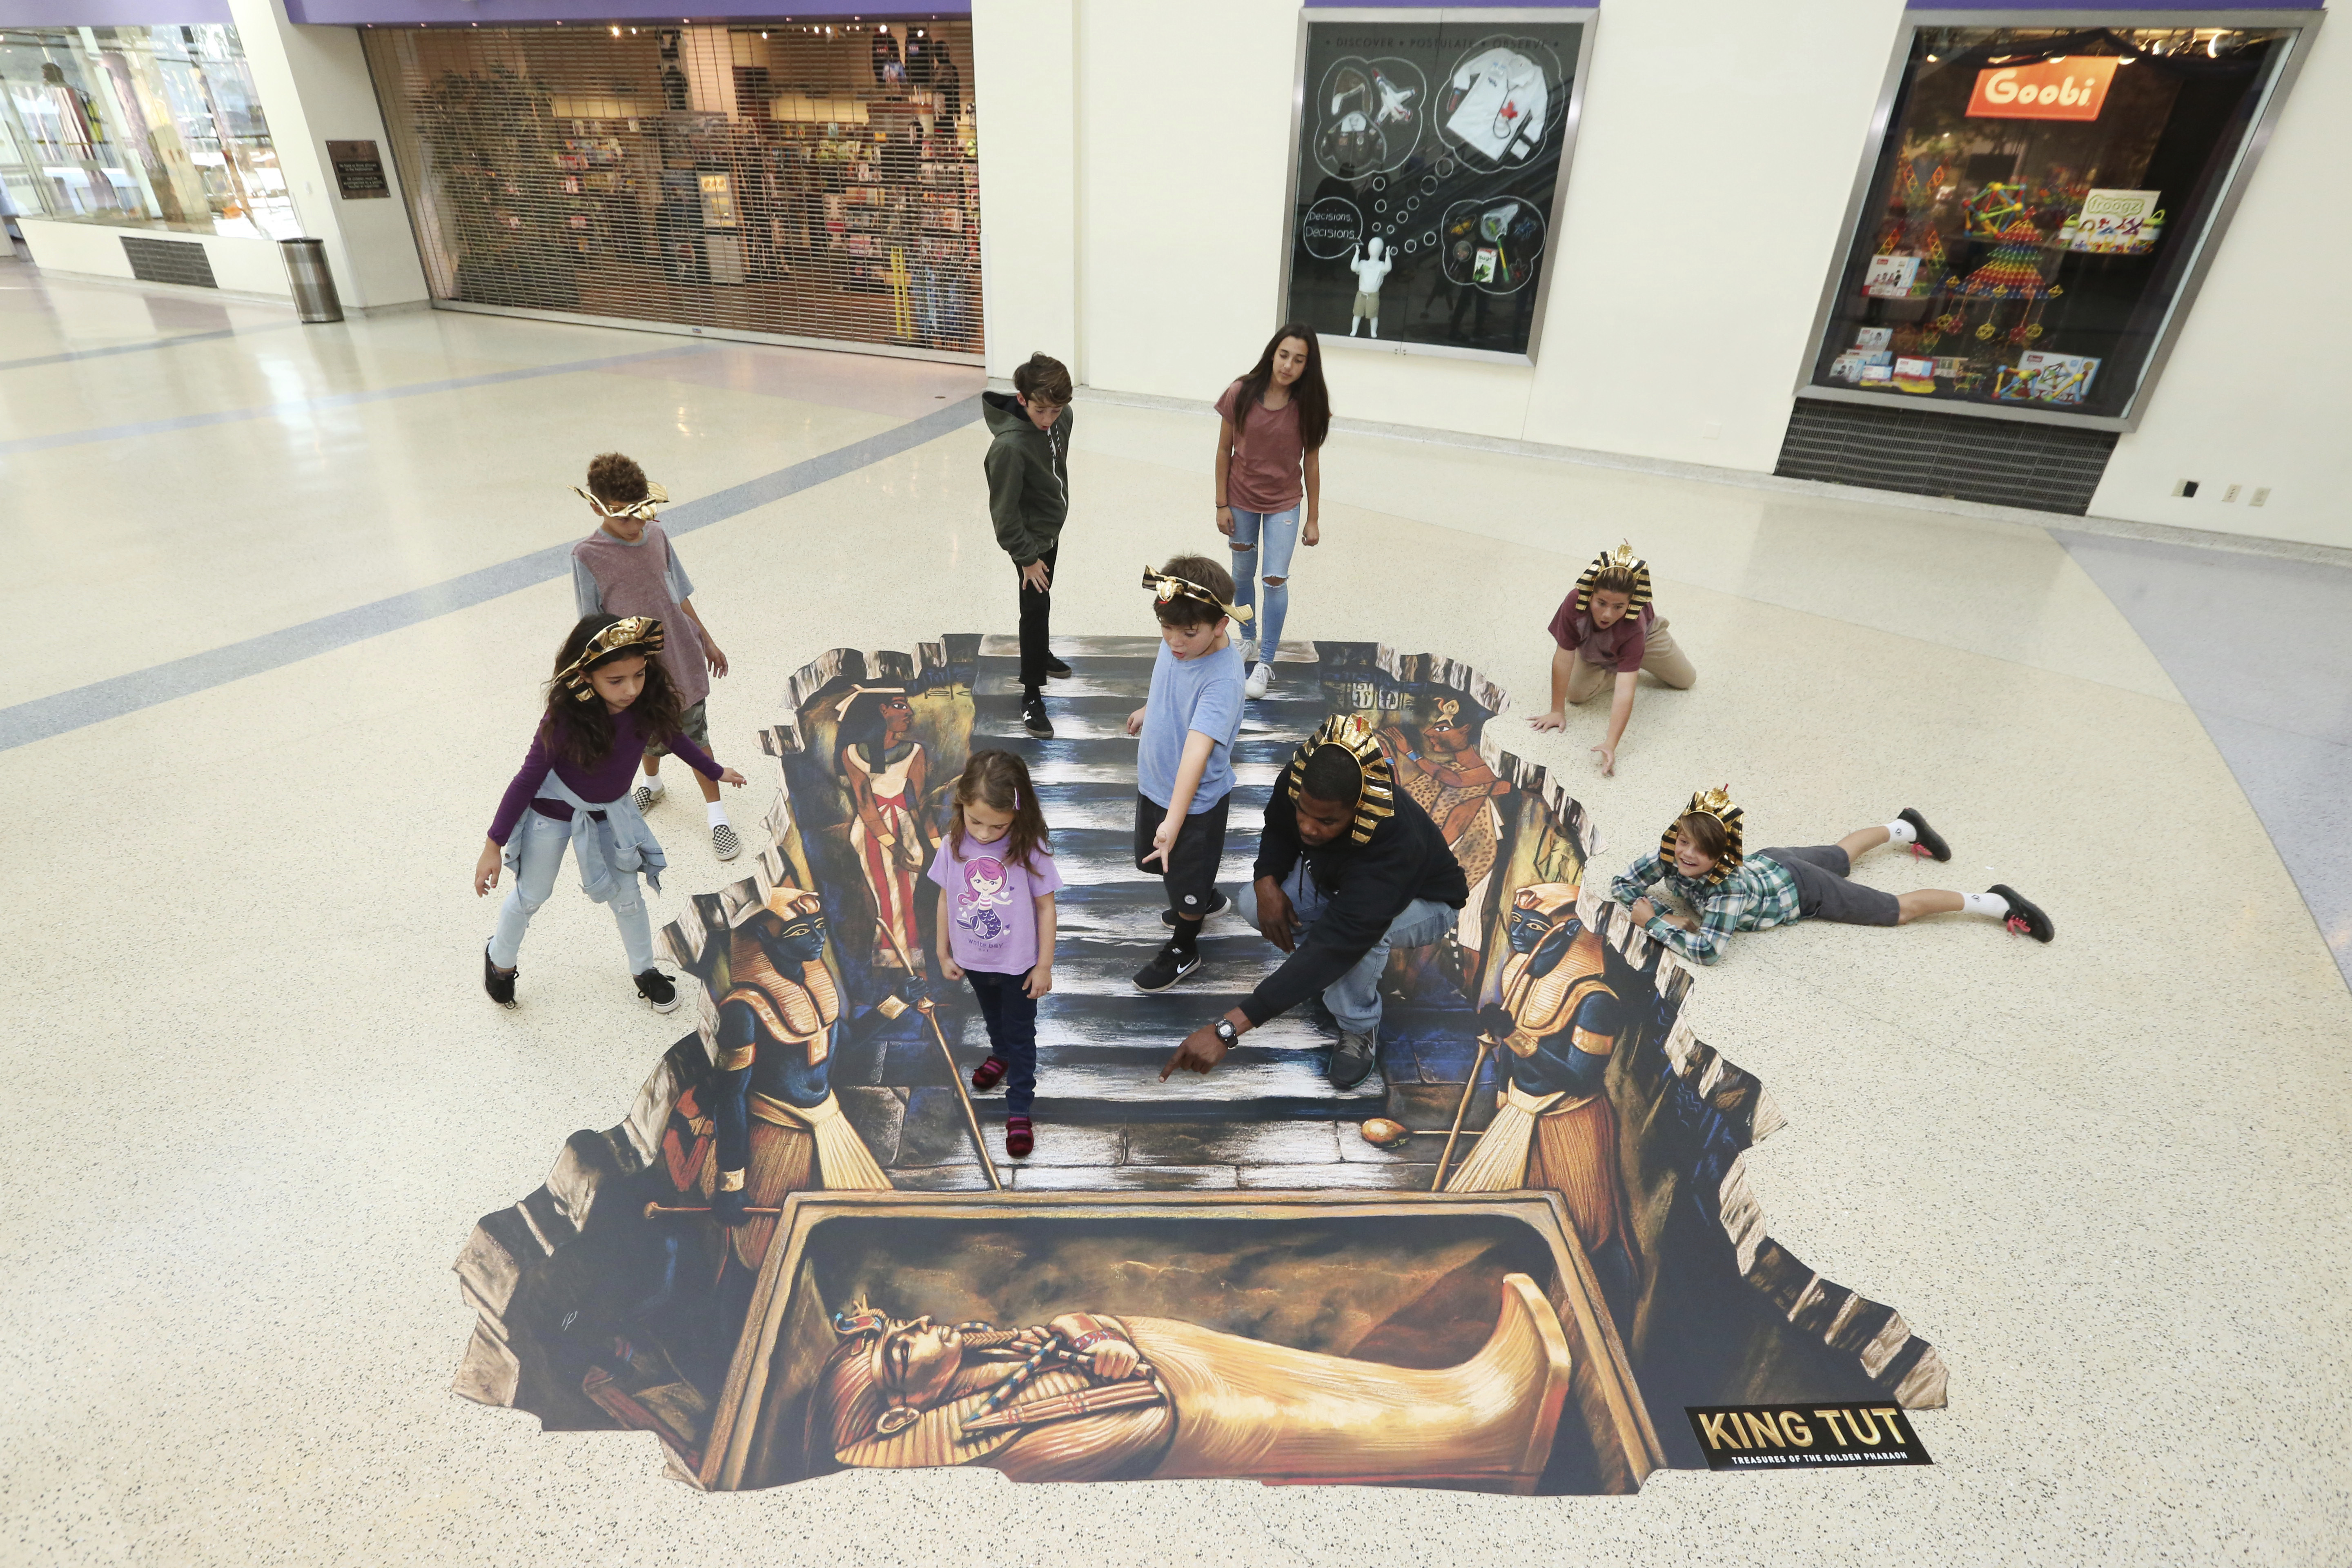 In this image distributed on Wednesday, Nov. 29, 2017, children celebrate the announcement of the KING TUT: Treasures of the Golden Pharaoh exhibition at the California Science Center in Los Angeles, overlooking an artistic recreation of his tomb that appears as if in 3D.